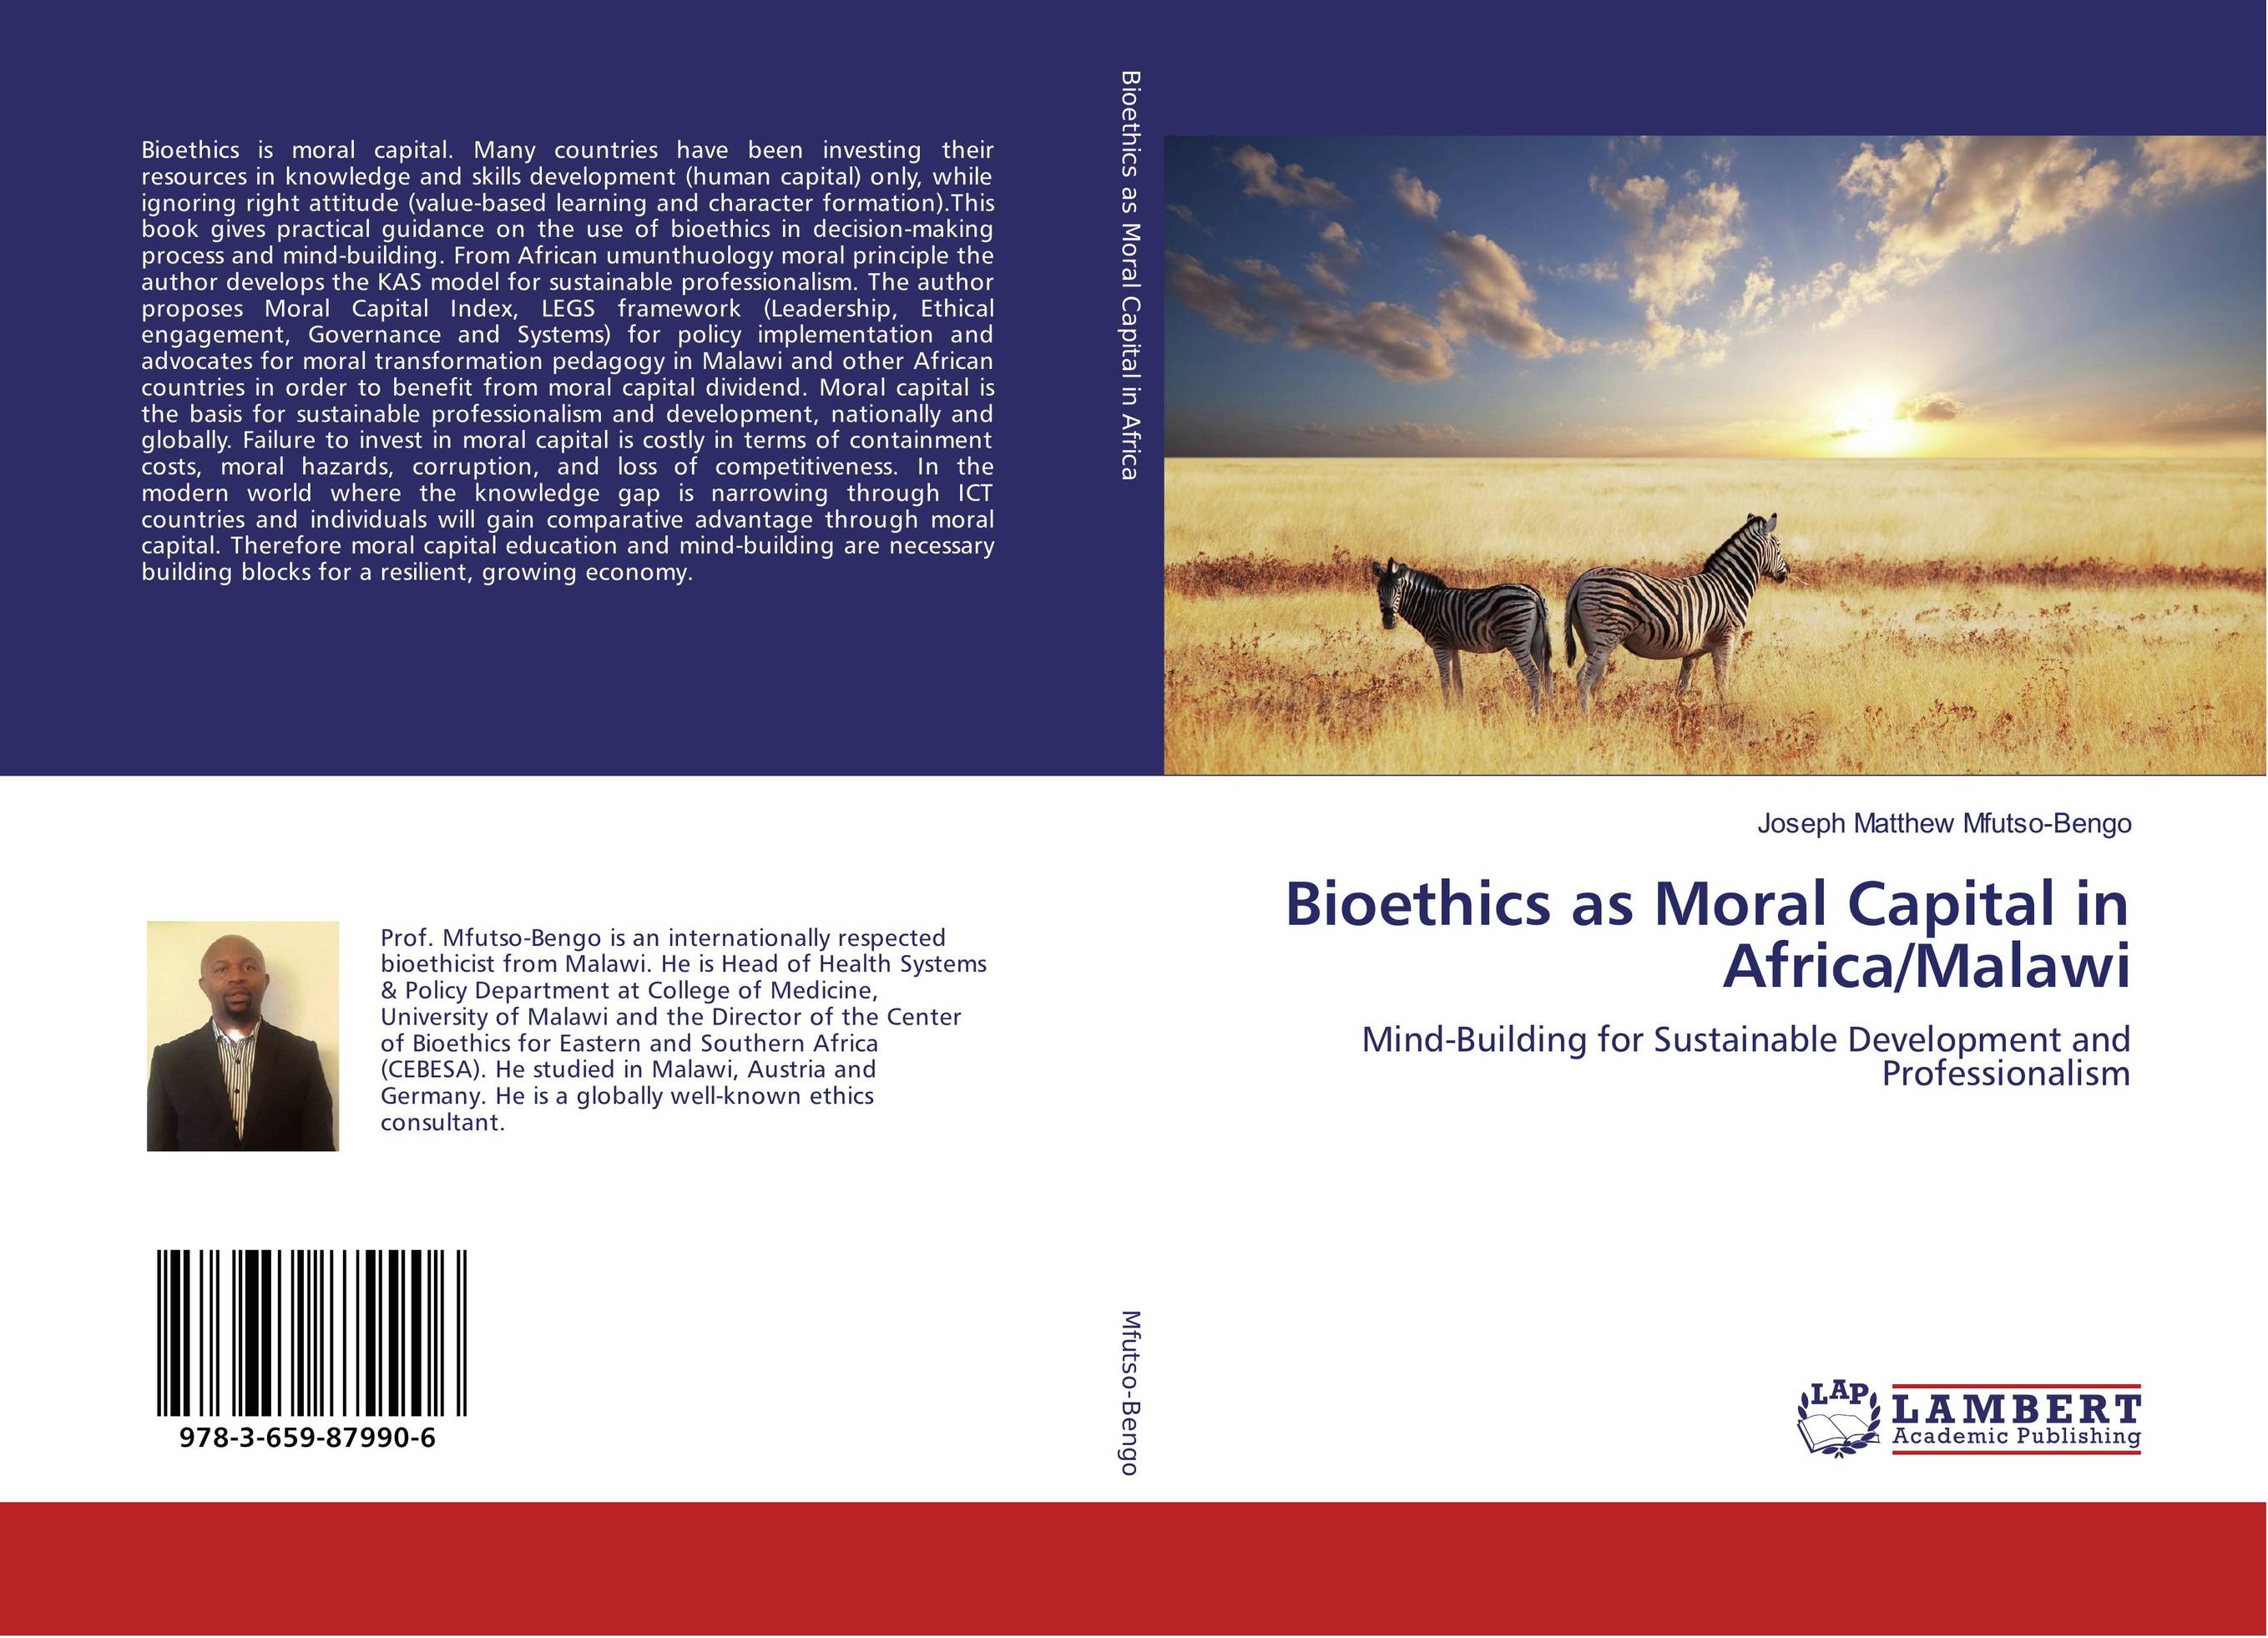 Bioethics as Moral Capital in Africa/Malawi addison wiggin endless money the moral hazards of socialism